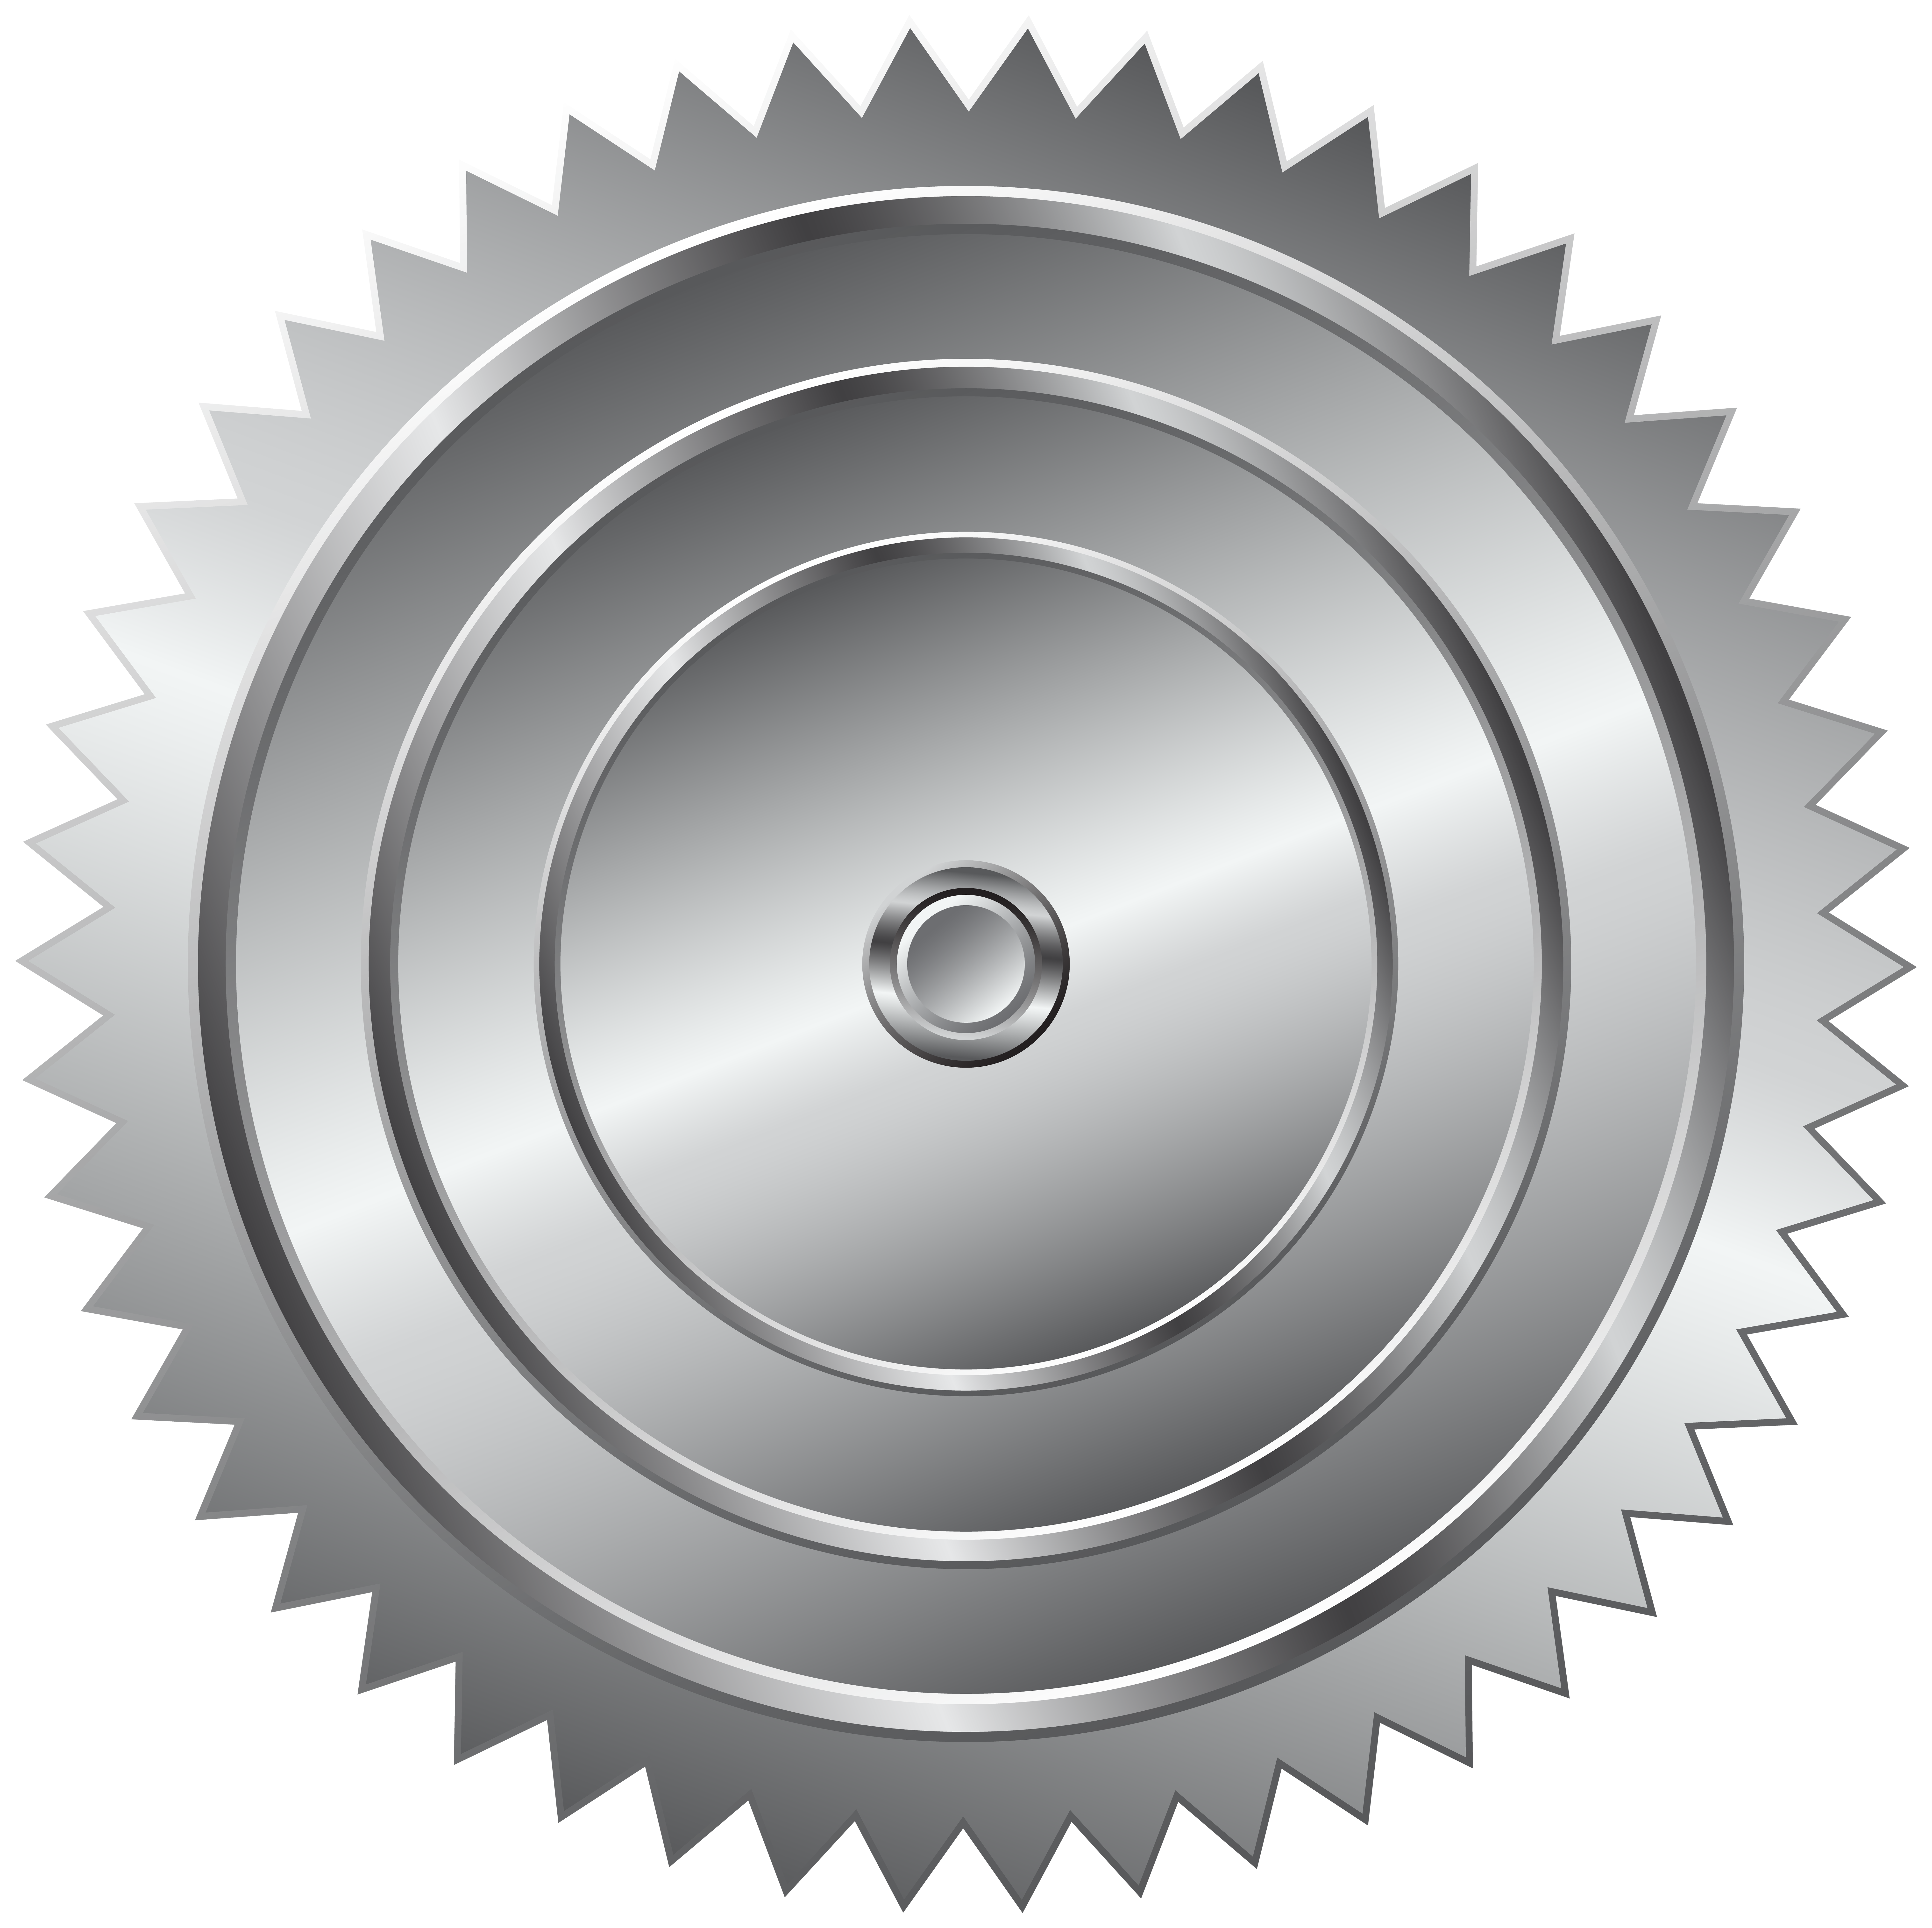 Gear clipart silver. Clip art png gallery